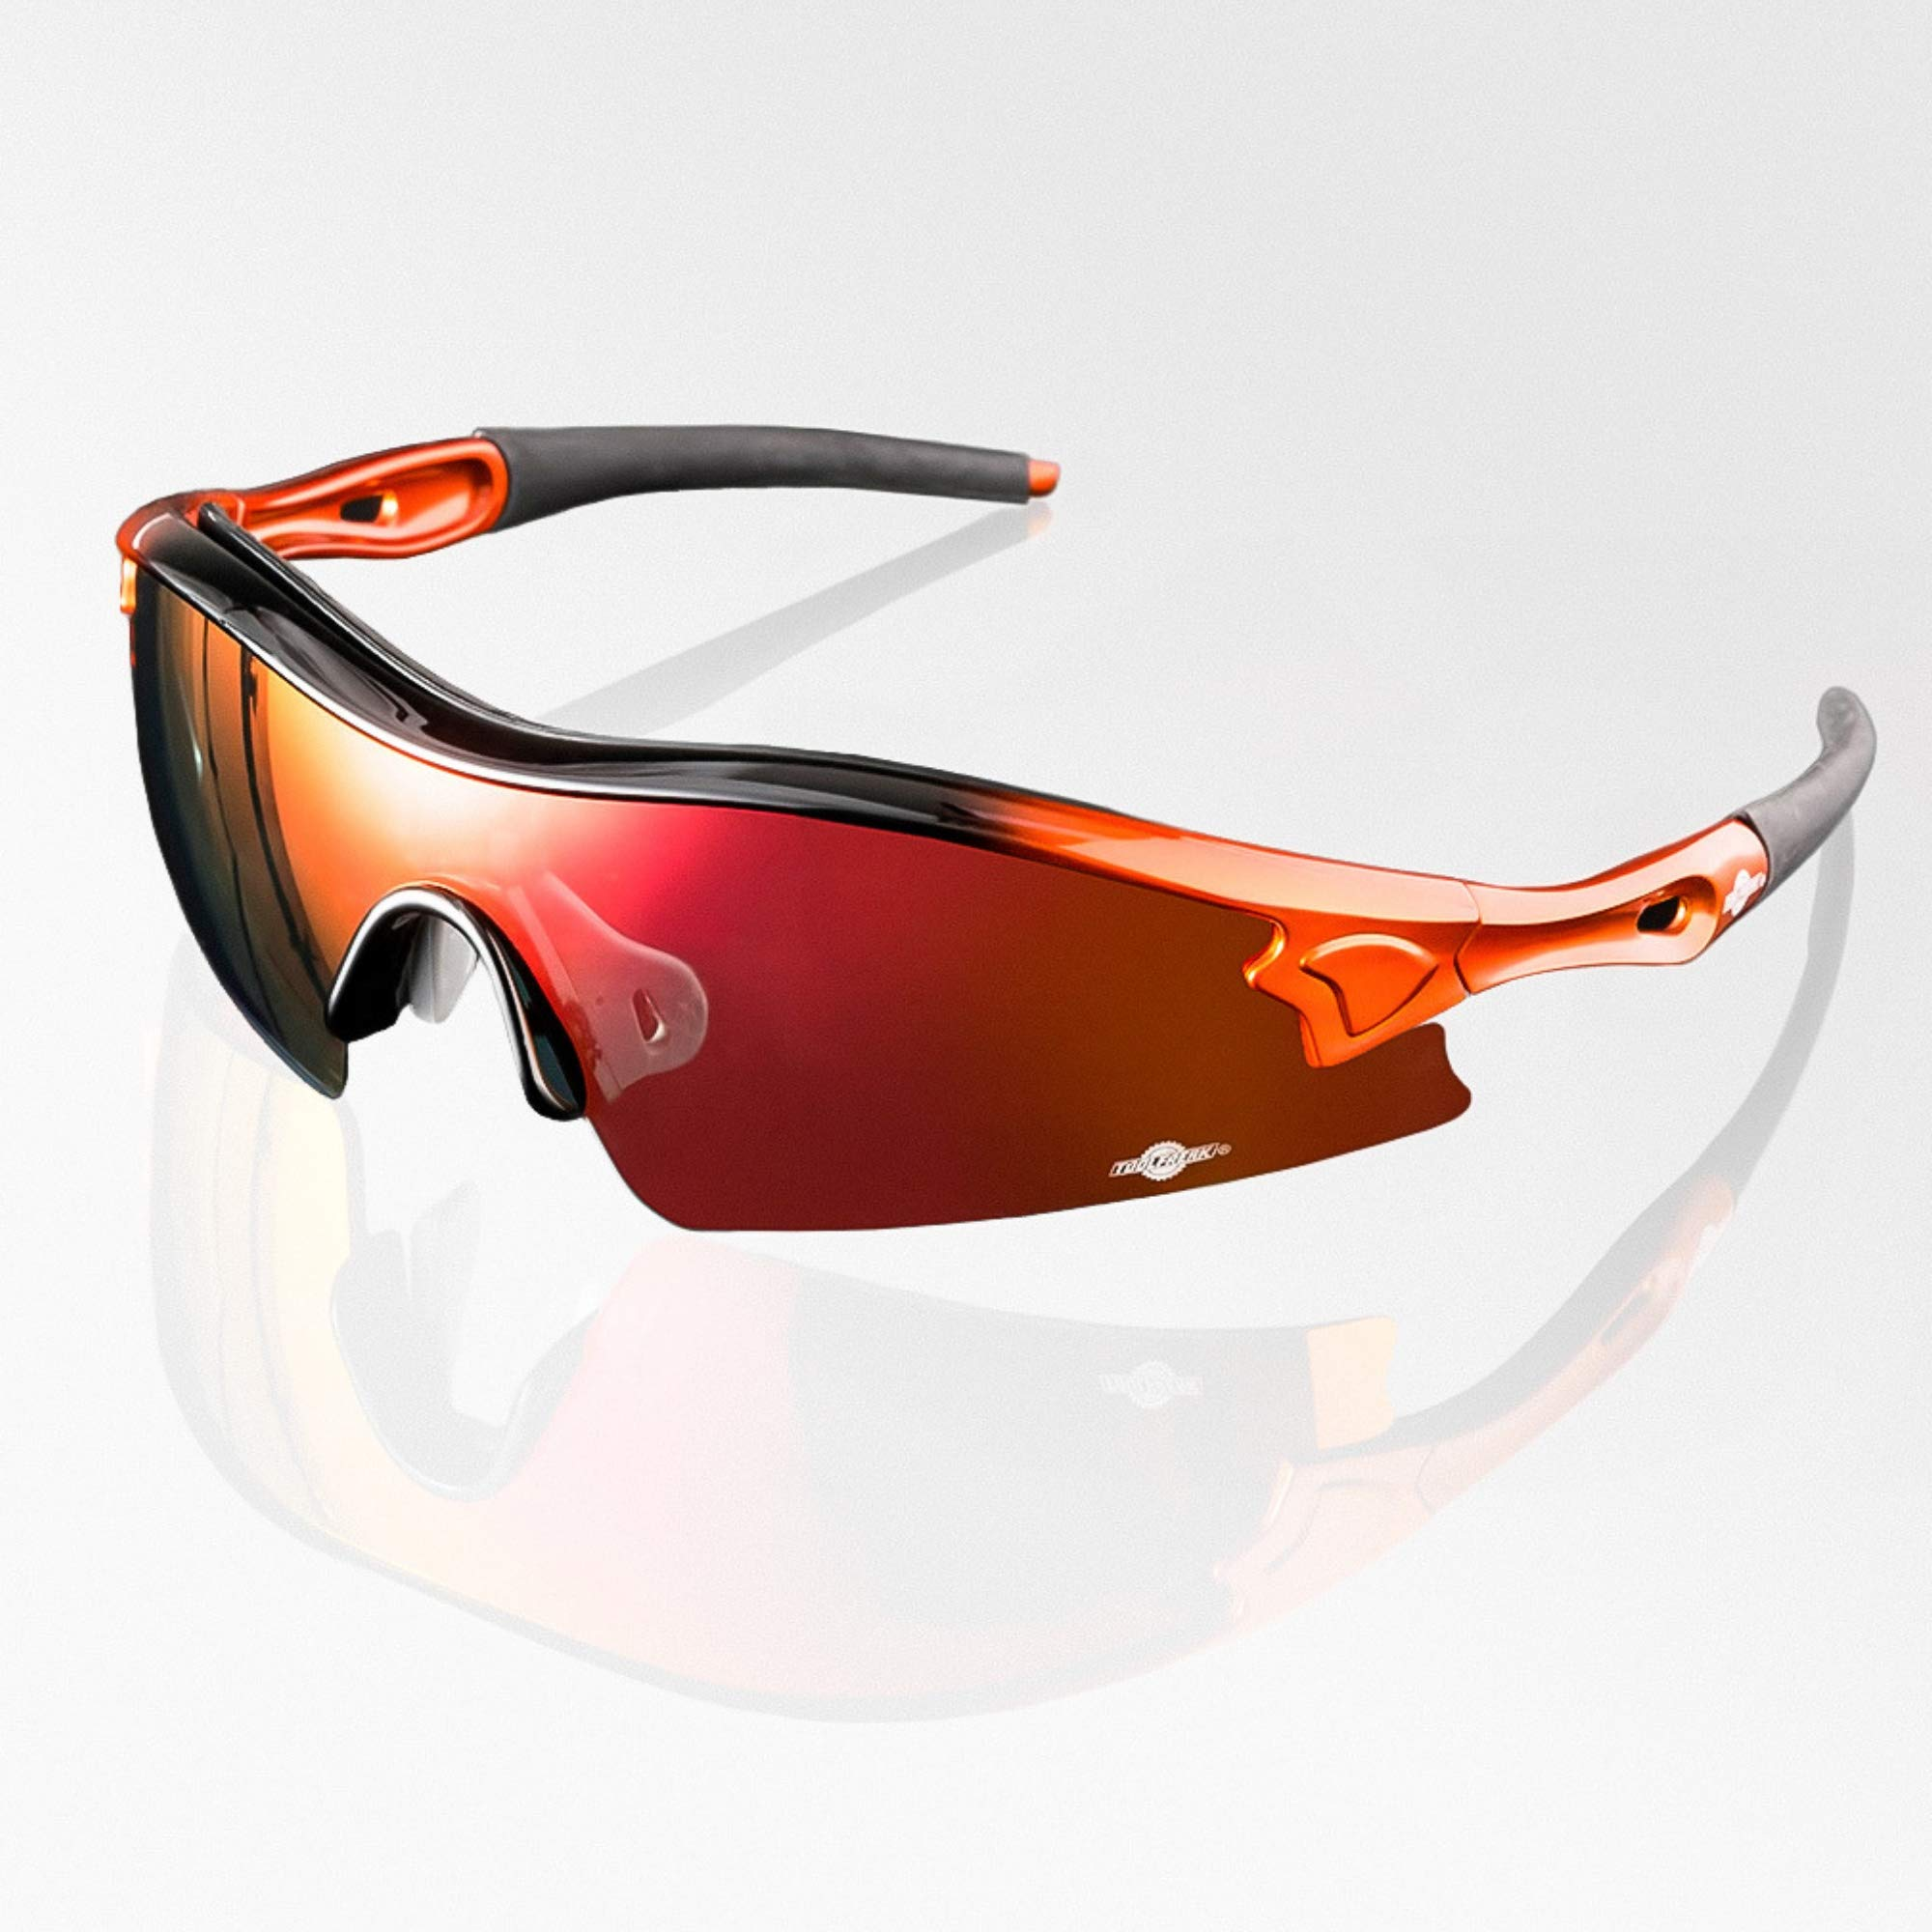 ToolFreak Reevo Safety Sunglasses for Work & Sport, Red Mirror Lens, Anti Glare, UV & Impact Eye Protection, Safety Rating to ANSI Z87+, Hard Case, Water Repellent Pouch, Neck Cord & Cloth by ToolFreak